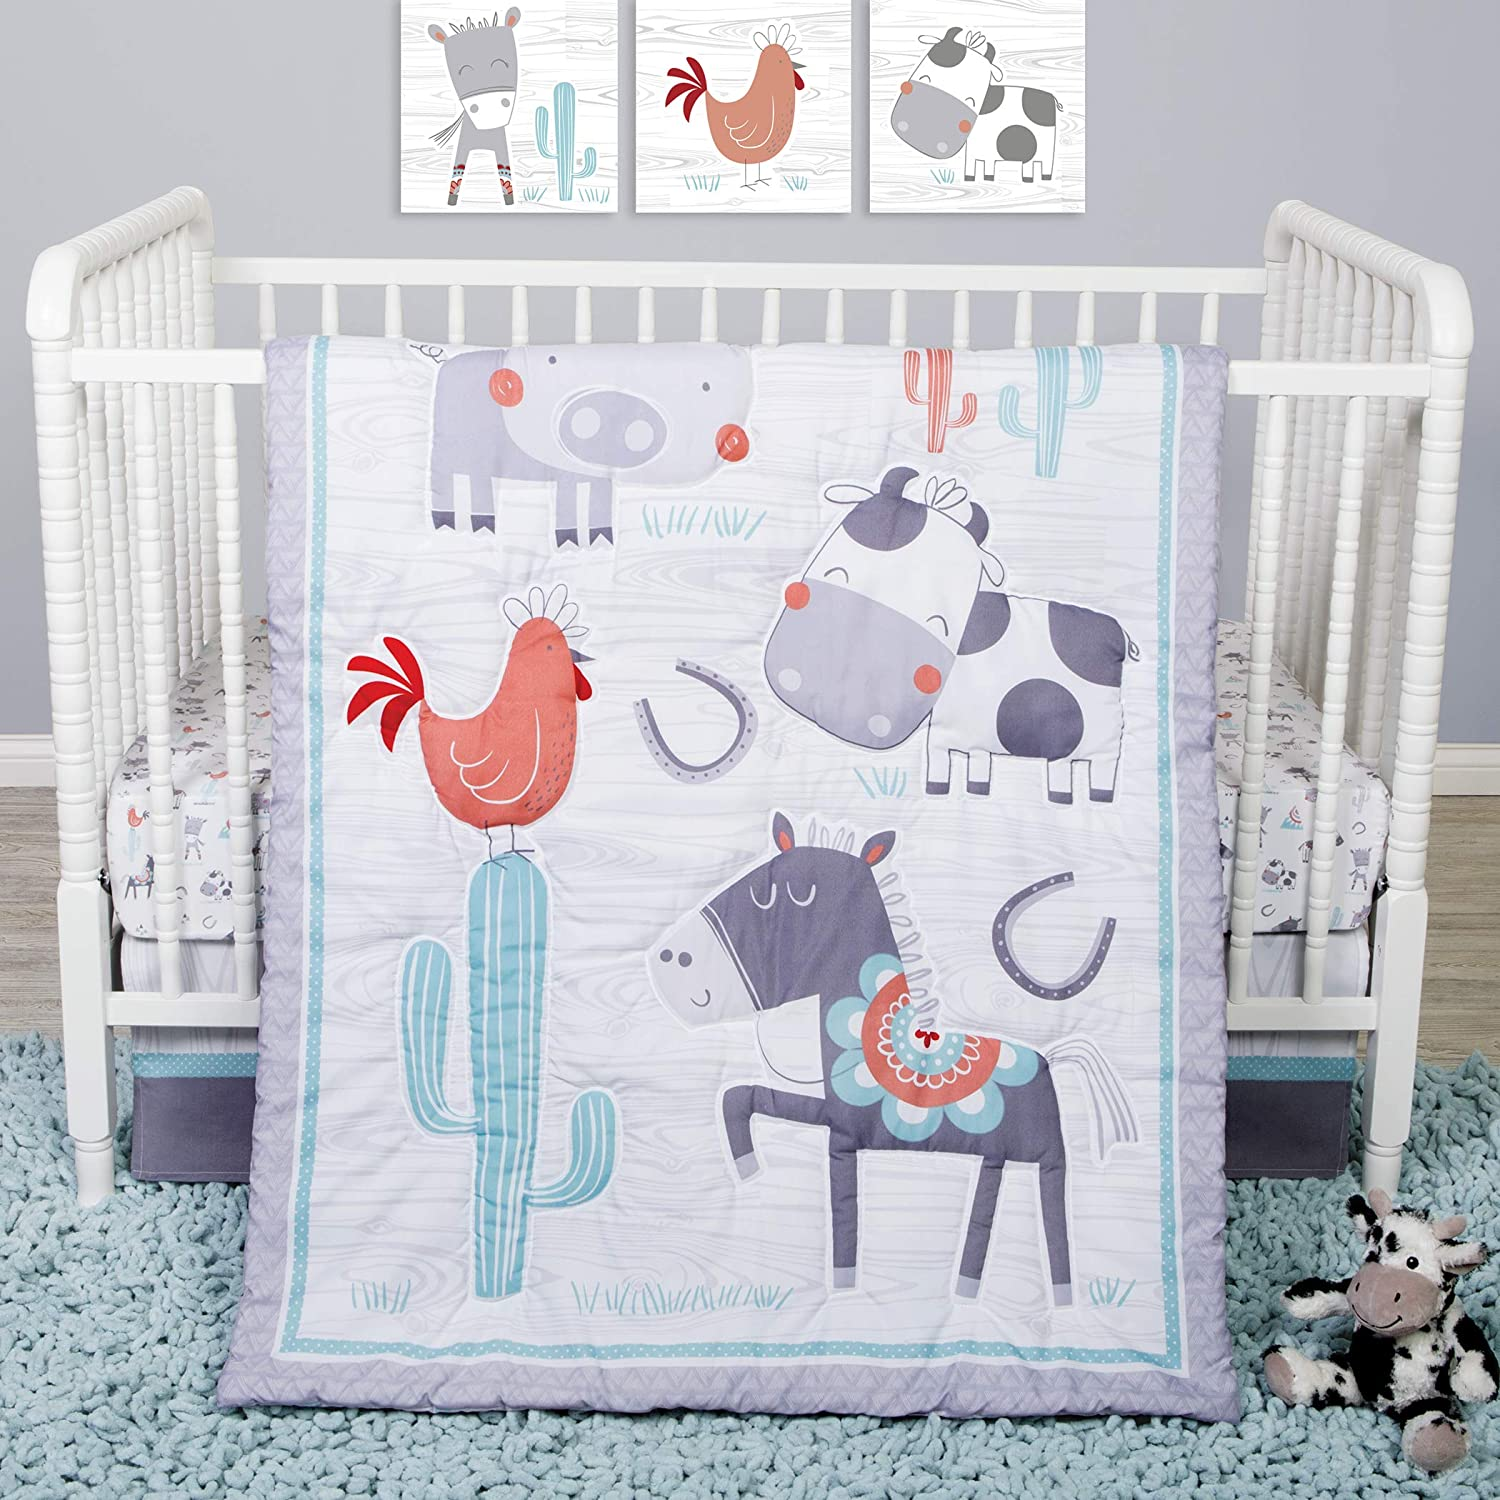 Sammy & Lou Sammy And Lou Farmstead Friends 4 Piece Crib Bedding Set